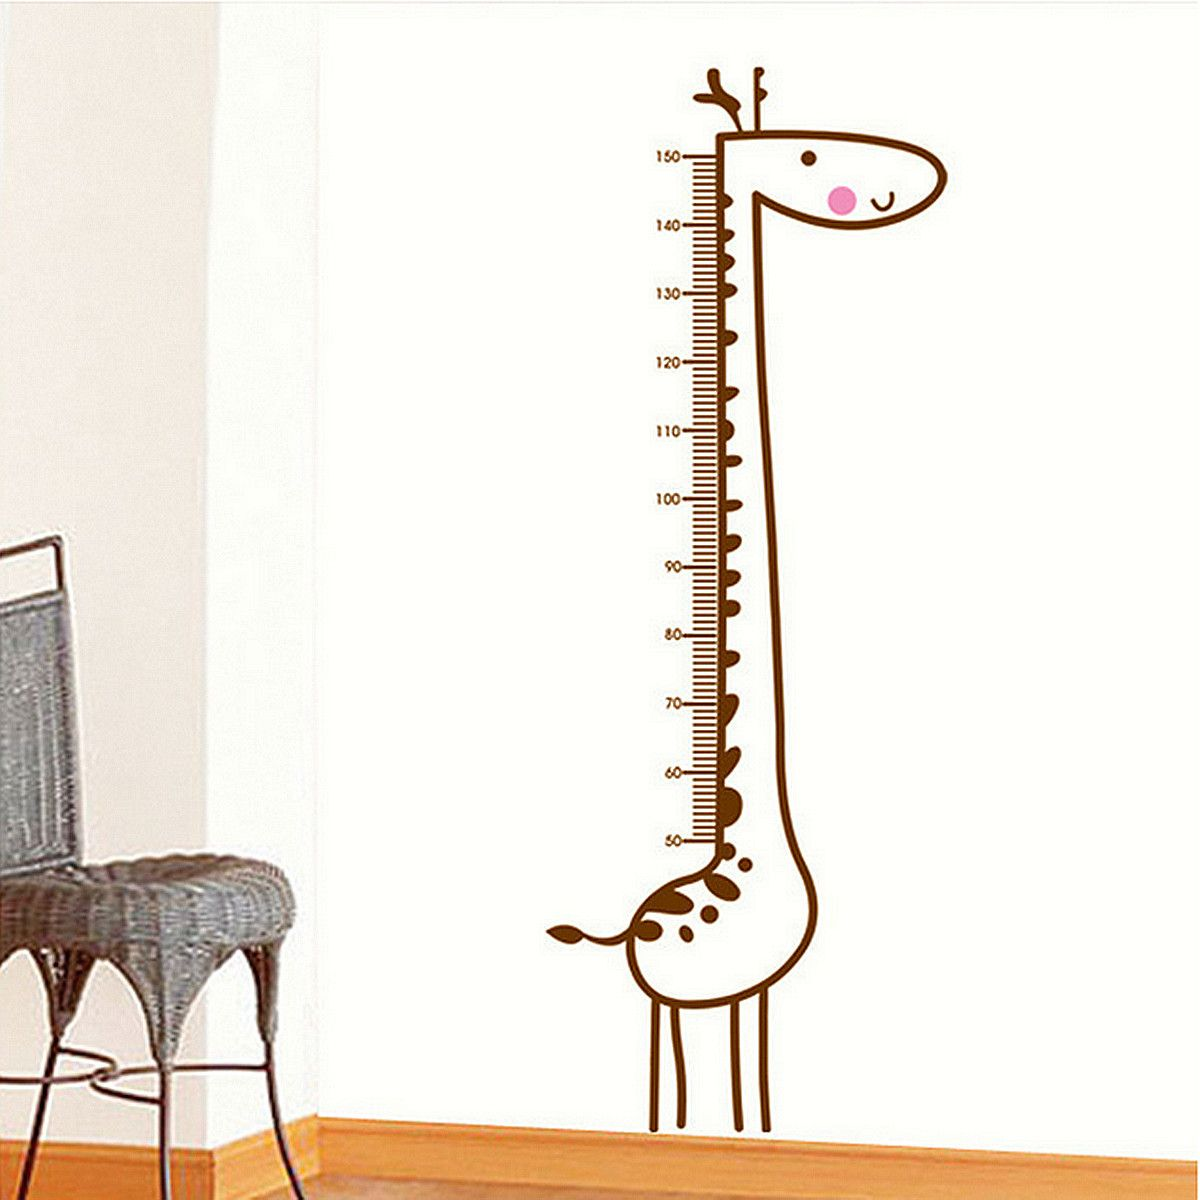 Giraffe wall stickers kids children room growth chart height decal giraffe wall stickers kids children room growth chart height decal measure removable home decoration geenschuldenfo Image collections